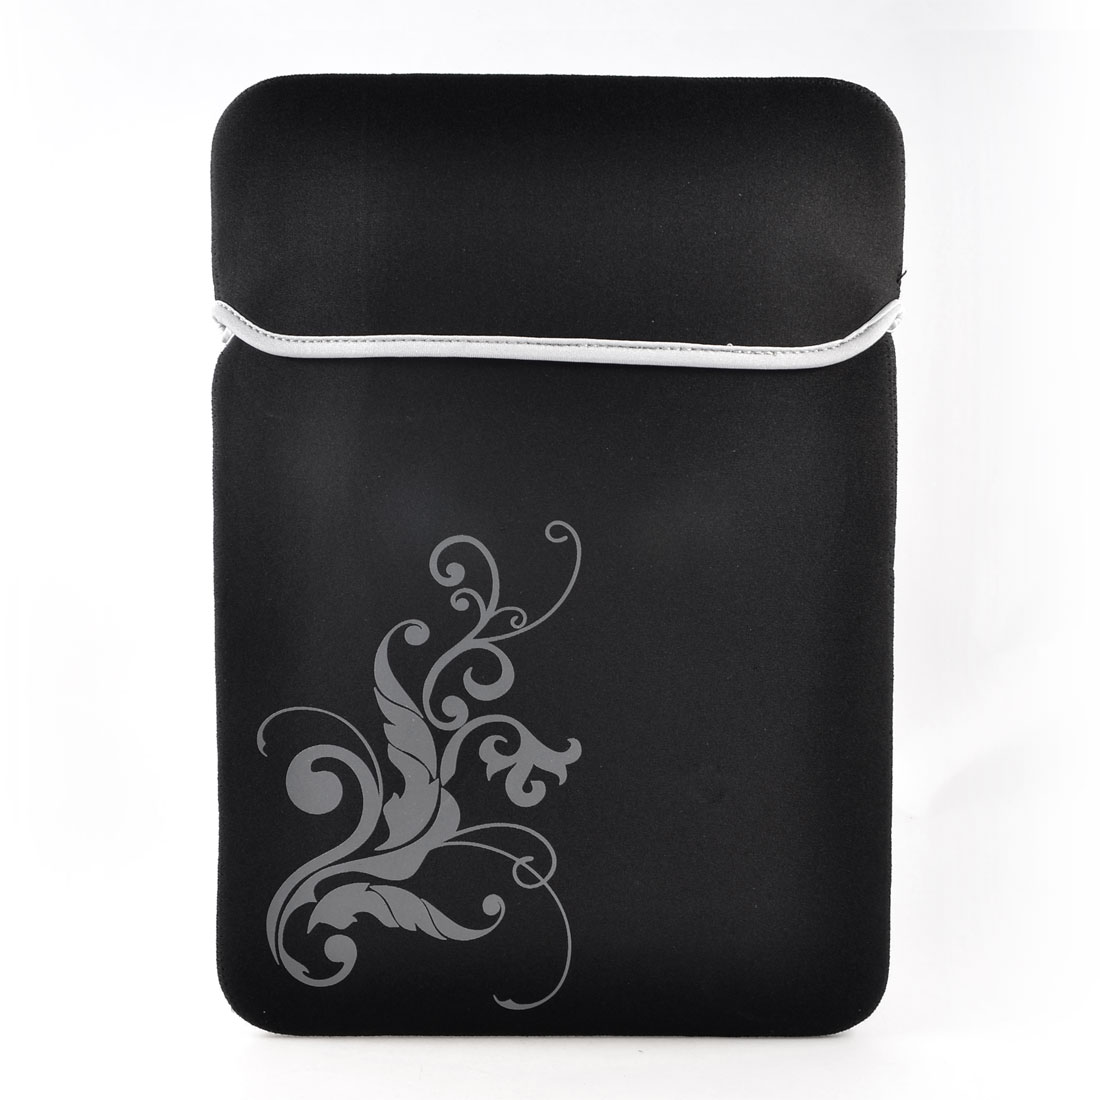 "14"" 14.1"" Laptop Computer Flower Black Neoprene Sleeve Bag Case Pouch"